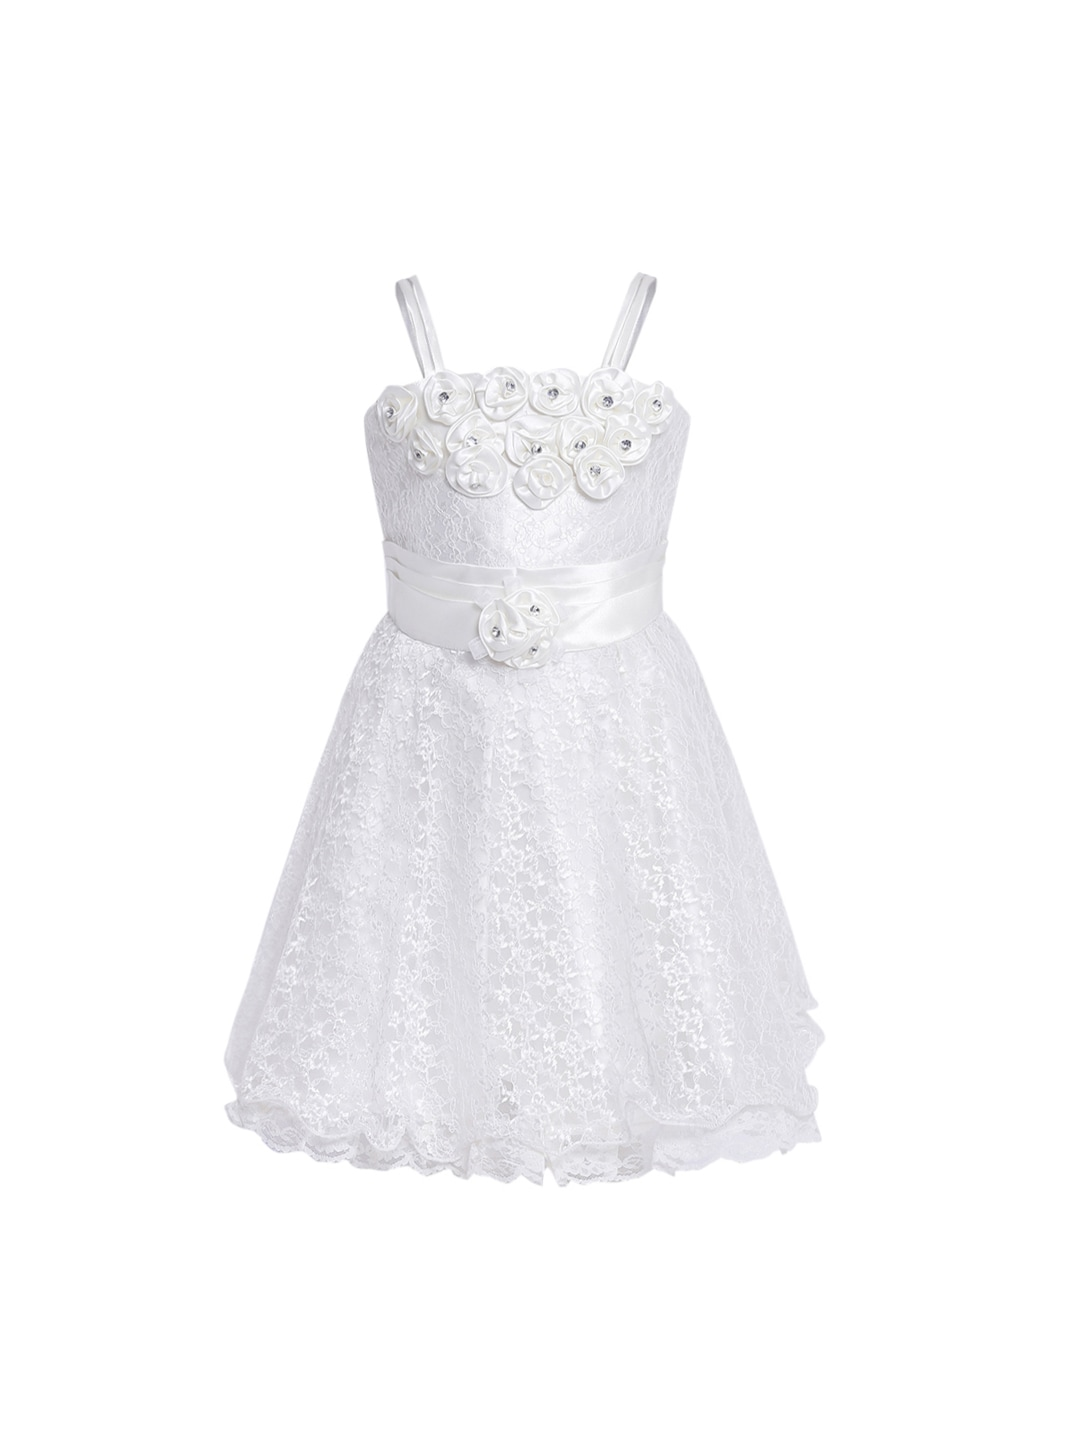 0e3b4e5ef944 Baby Dresses - Buy Dress for Babies Online at Best Price